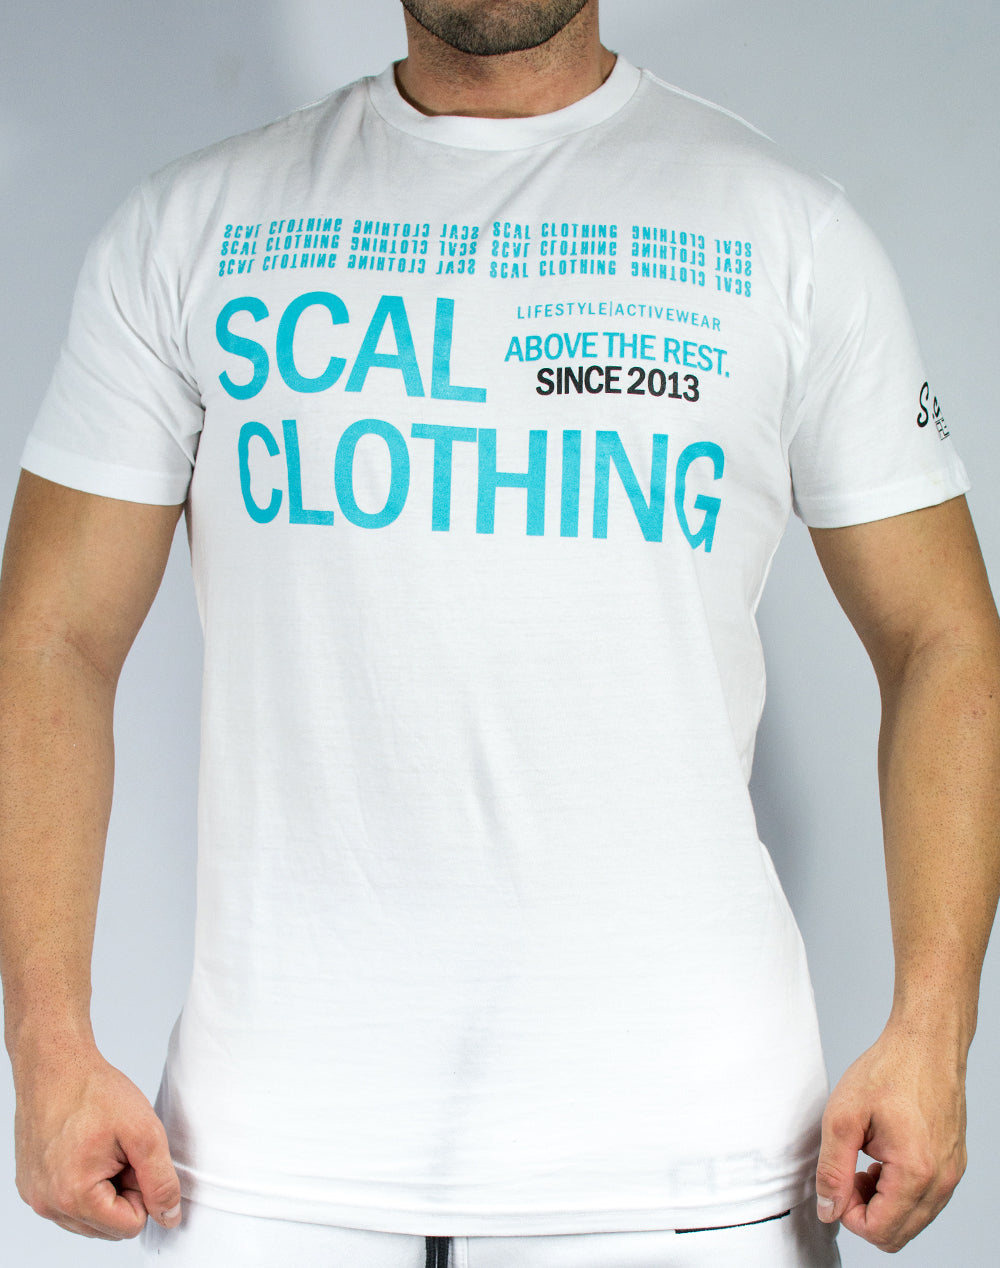 Scal Since '13 - White/Aqua - Scal Clothing